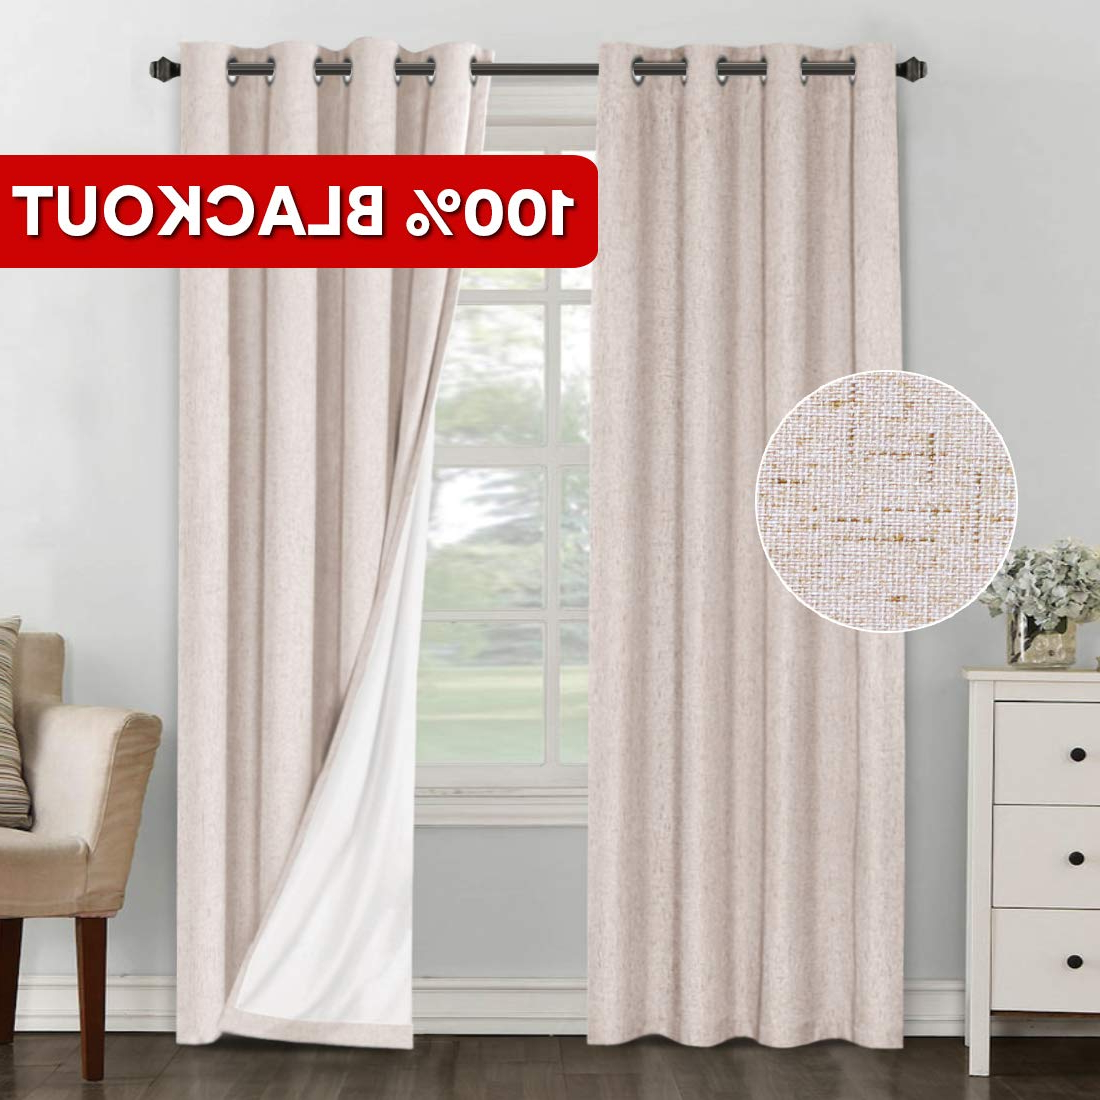 [%primebeau 100% Blackout Curtains 84 Inches Length Linen Look Thermal Insulated Energy Saving Window Curtain Drapers For Bedroom/living Room, Textured For 2021 Primebeau Geometric Pattern Blackout Curtain Pairs|primebeau Geometric Pattern Blackout Curtain Pairs With Newest Primebeau 100% Blackout Curtains 84 Inches Length Linen Look Thermal Insulated Energy Saving Window Curtain Drapers For Bedroom/living Room, Textured|newest Primebeau Geometric Pattern Blackout Curtain Pairs Throughout Primebeau 100% Blackout Curtains 84 Inches Length Linen Look Thermal Insulated Energy Saving Window Curtain Drapers For Bedroom/living Room, Textured|well Liked Primebeau 100% Blackout Curtains 84 Inches Length Linen Look Thermal Insulated Energy Saving Window Curtain Drapers For Bedroom/living Room, Textured For Primebeau Geometric Pattern Blackout Curtain Pairs%] (View 8 of 20)